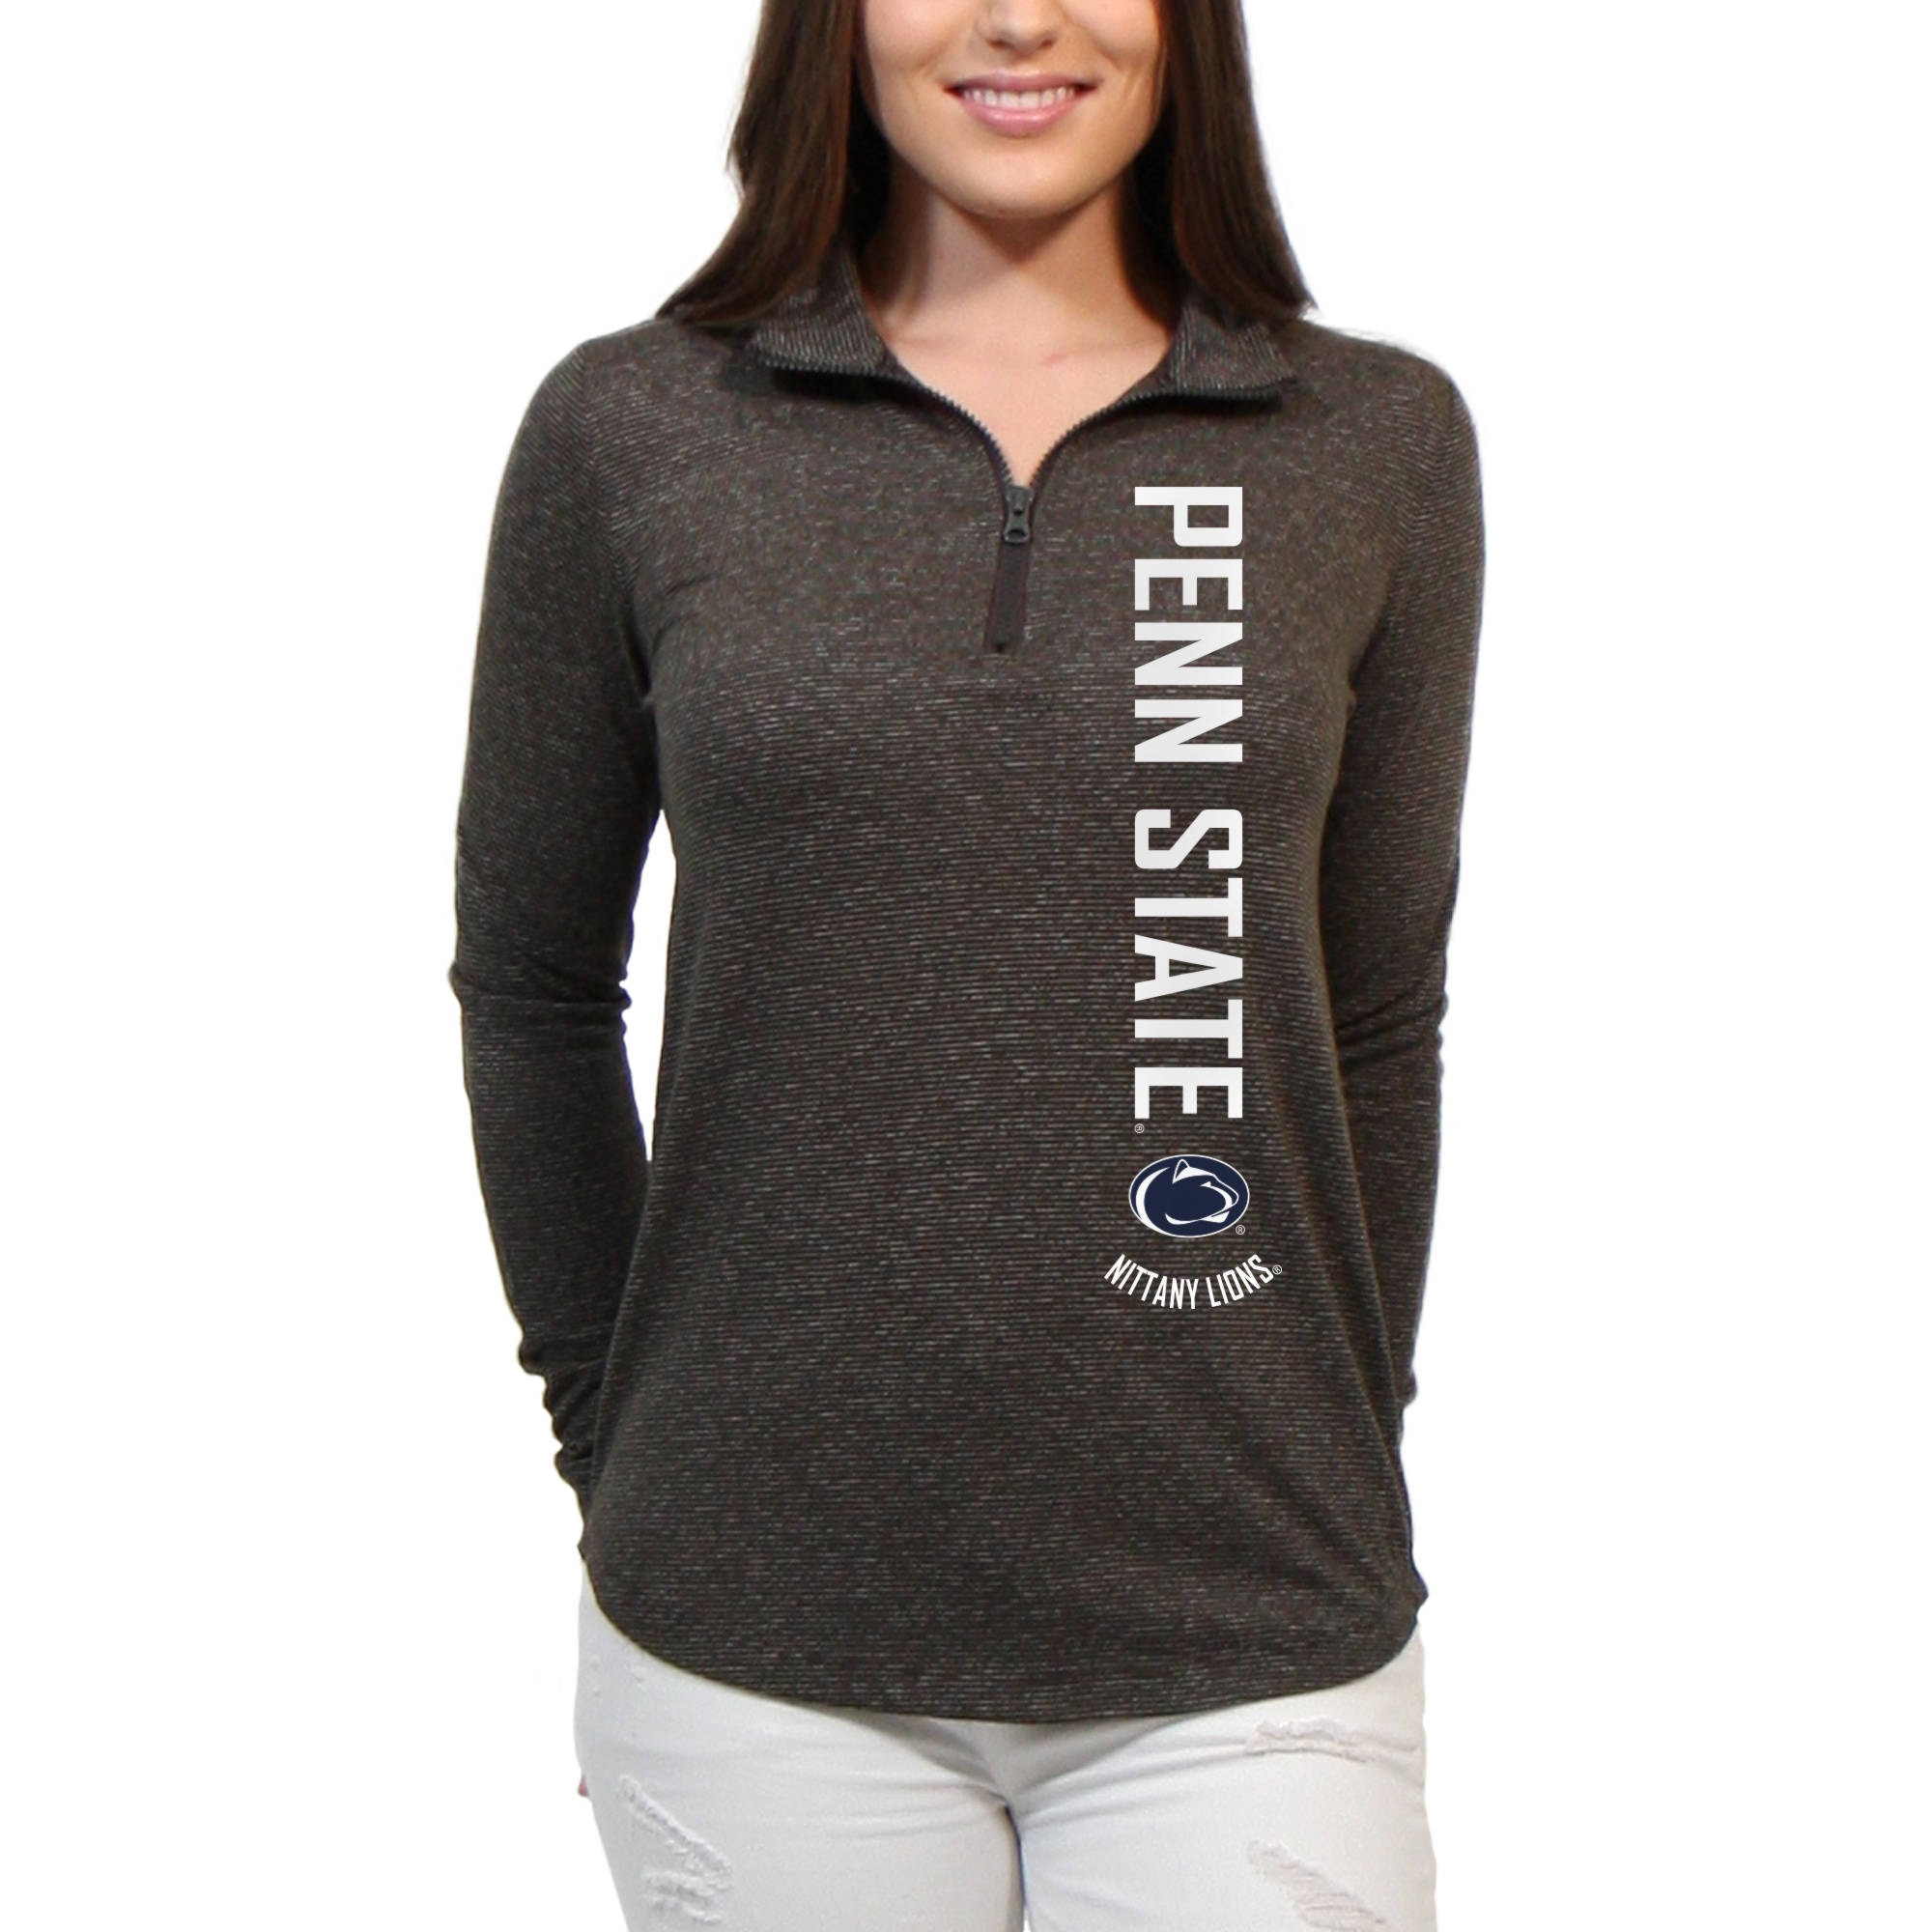 Penn State Nittany Lions Cascade Text Women's/Juniors Team Long Sleeve Half Zip Shirt